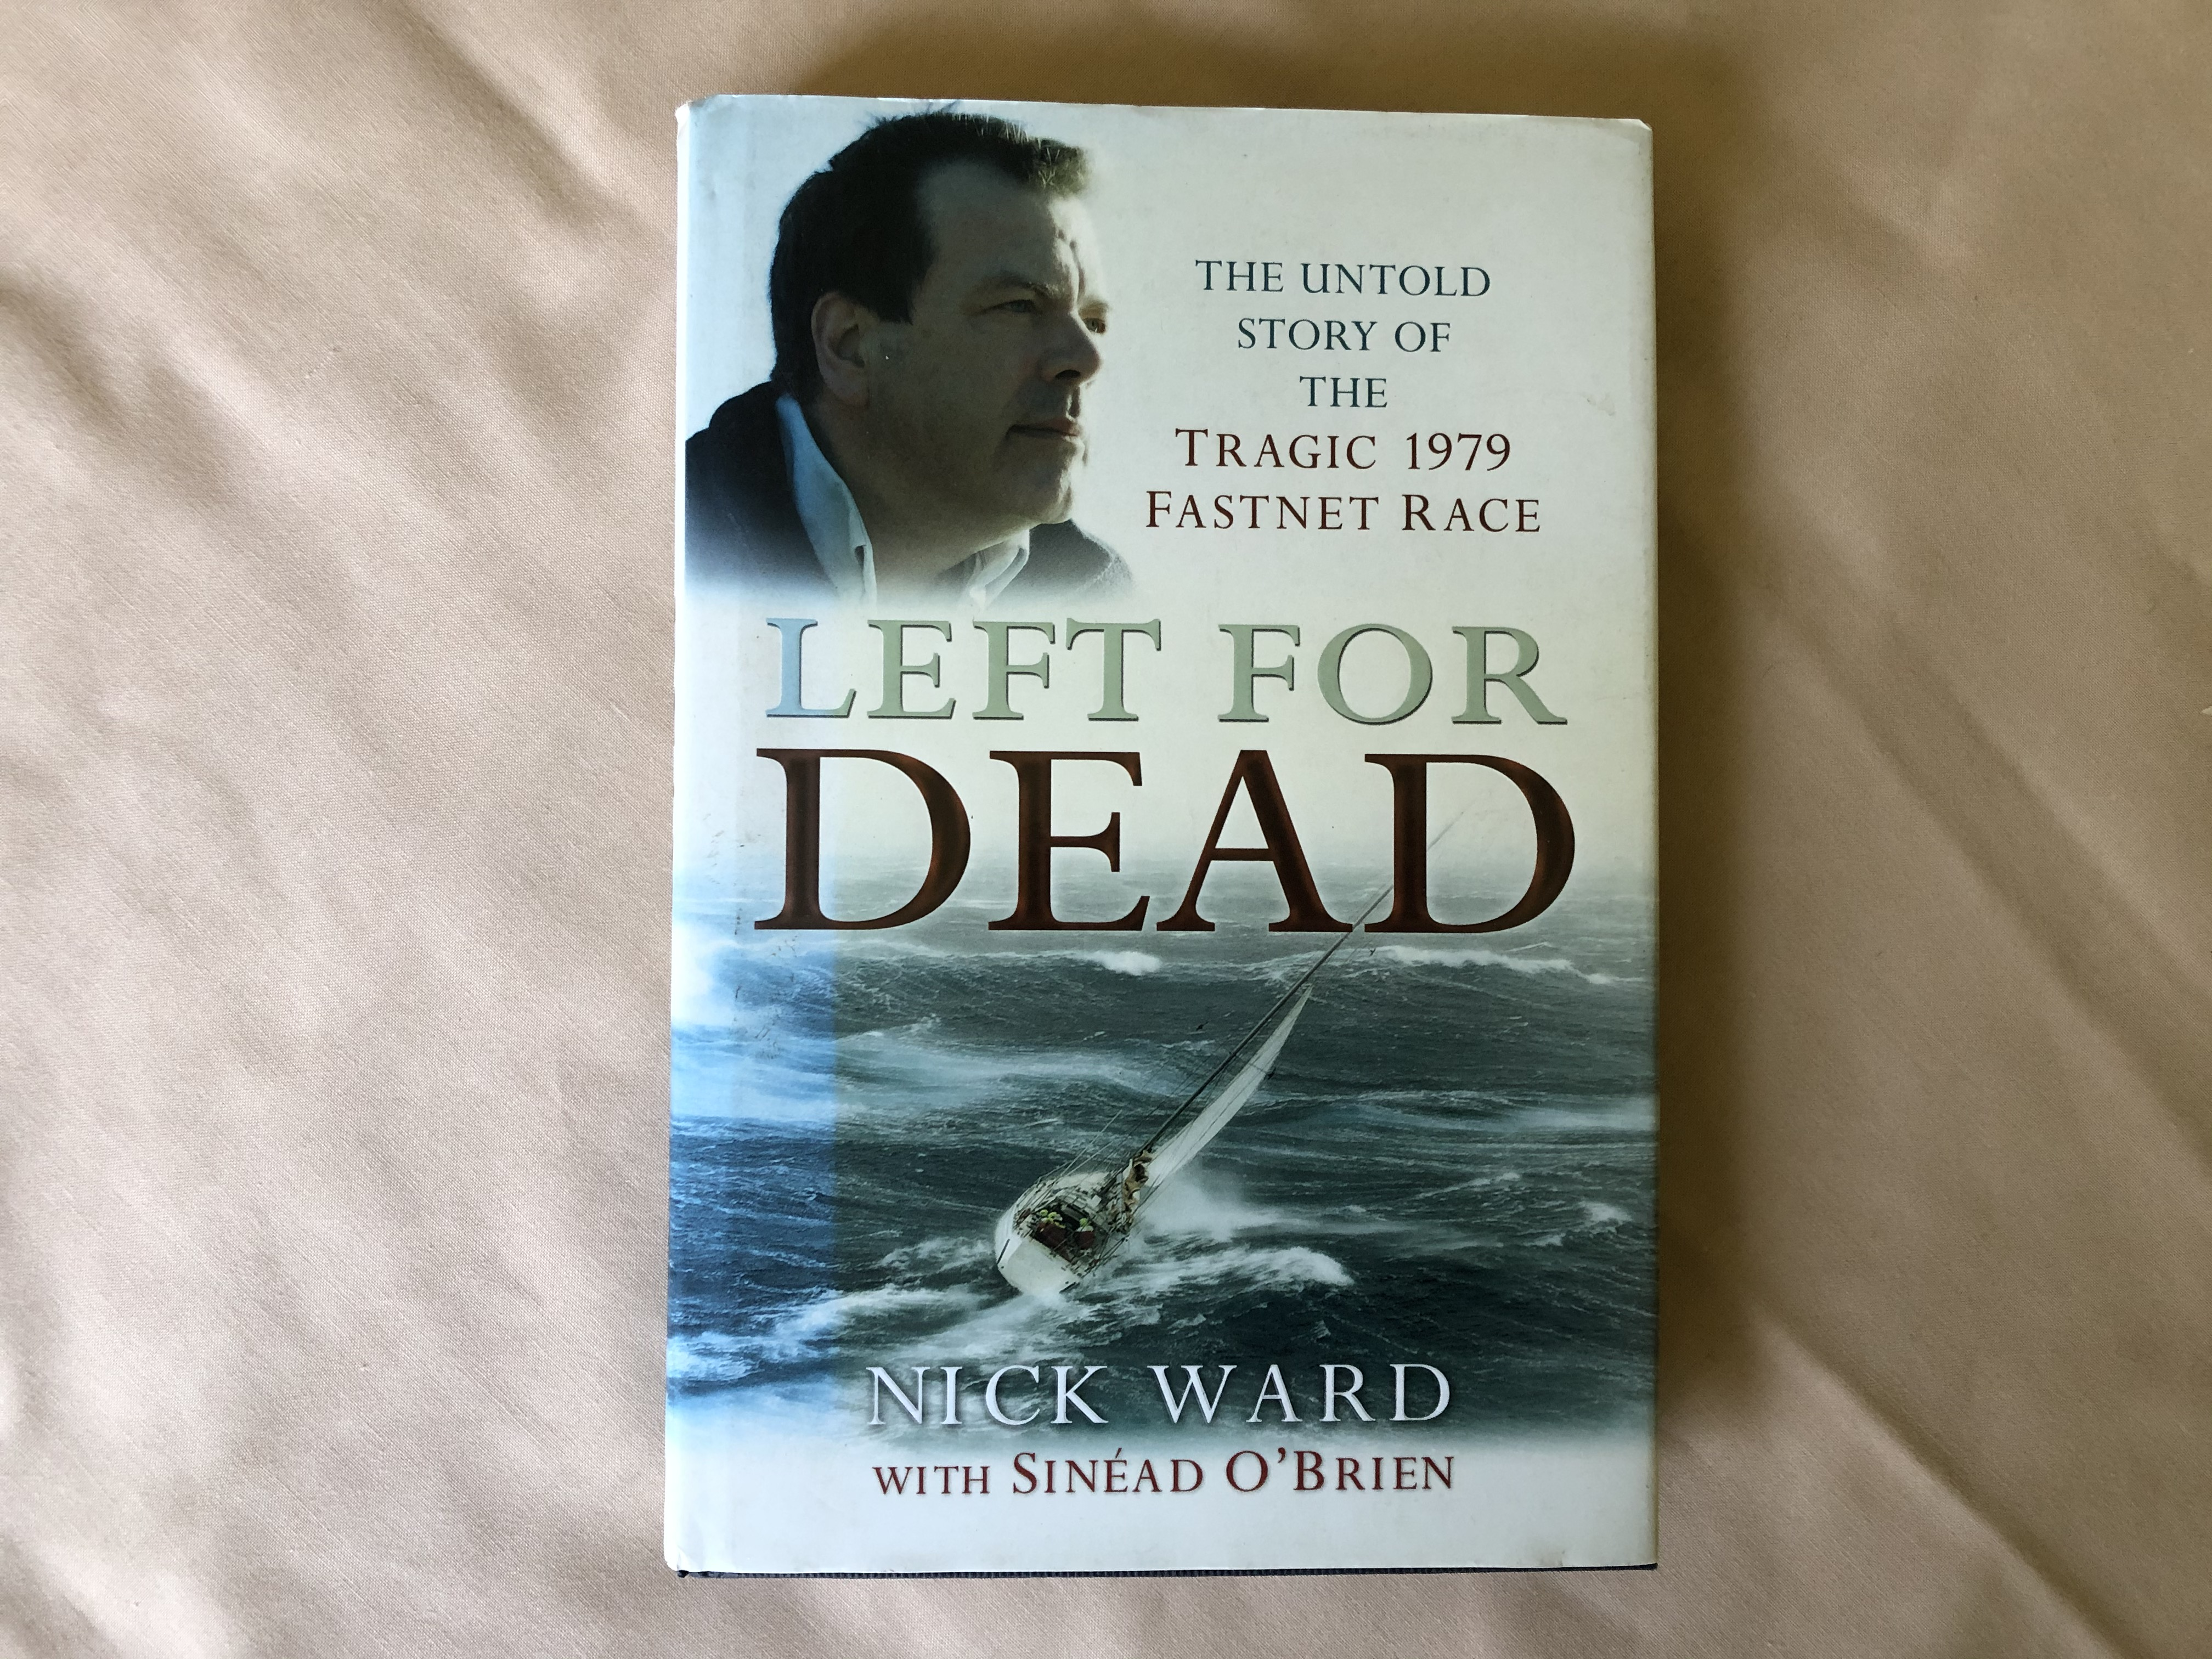 BOOK ENTITLED 'LEFT FOR DEAD' BY NICK WARD COVERING THE FASTNET RACE